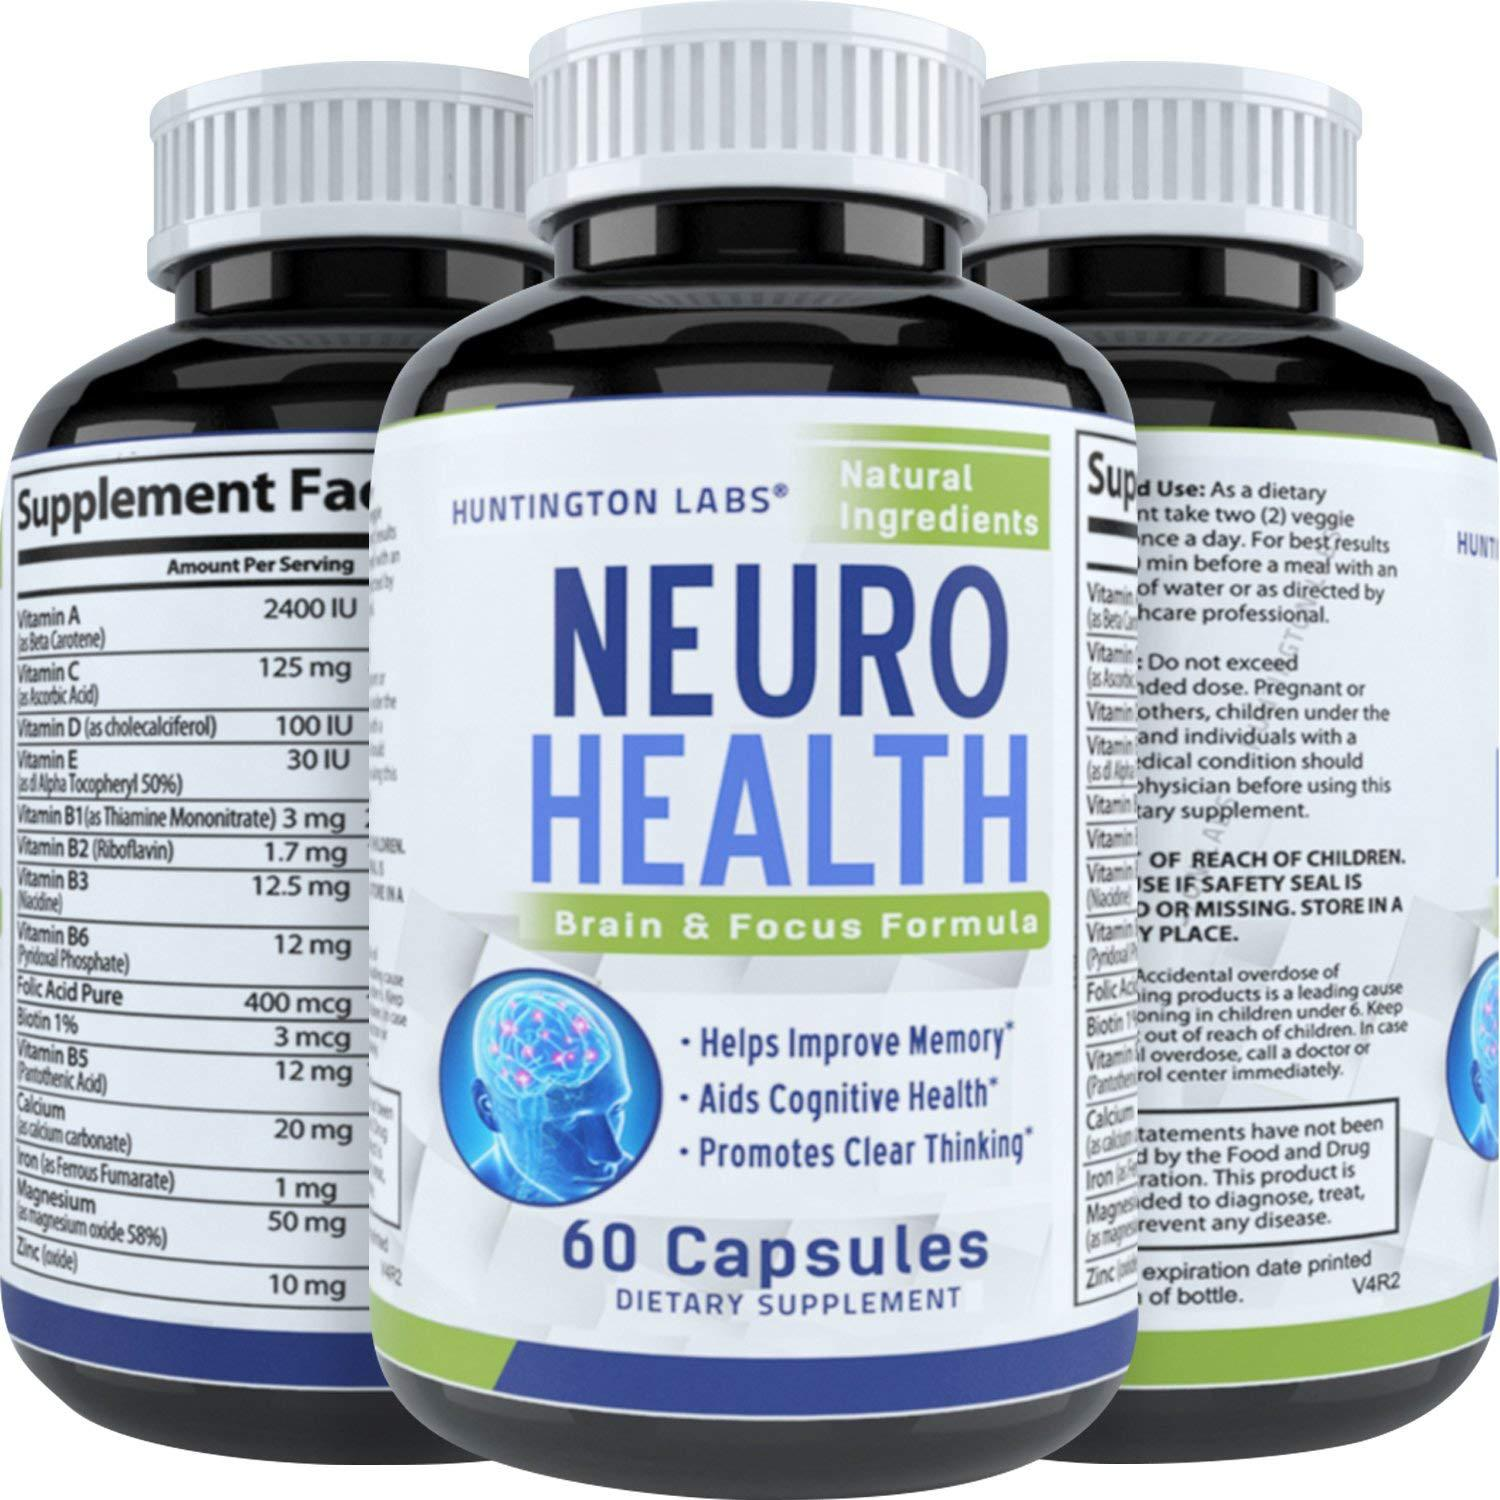 Best Supplements for Memory - Treatments for Memory